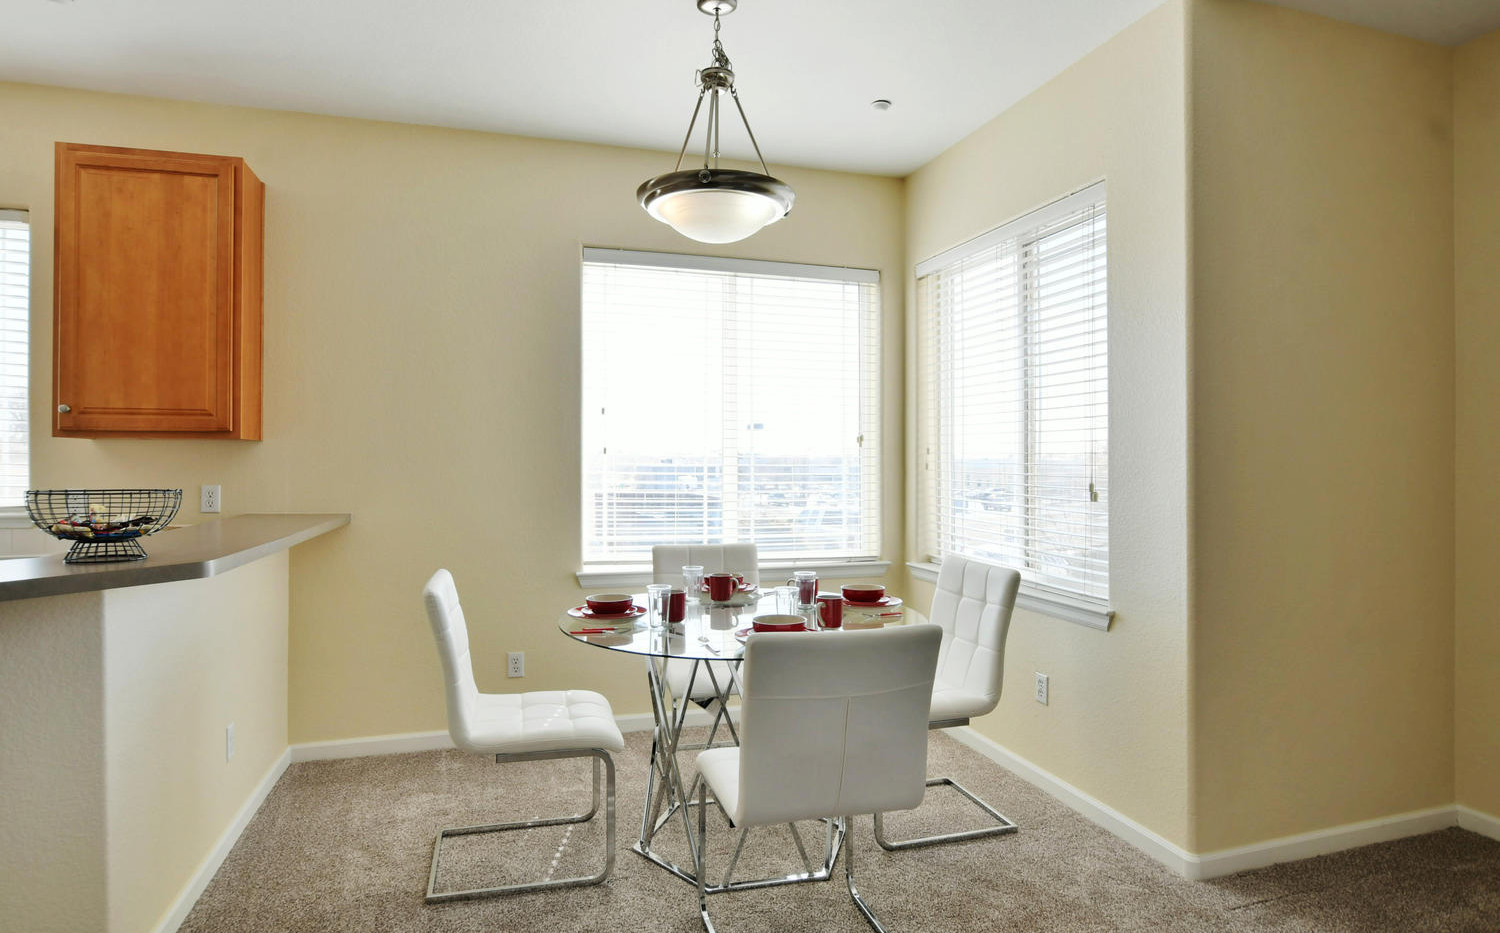 Two bedroom dining area